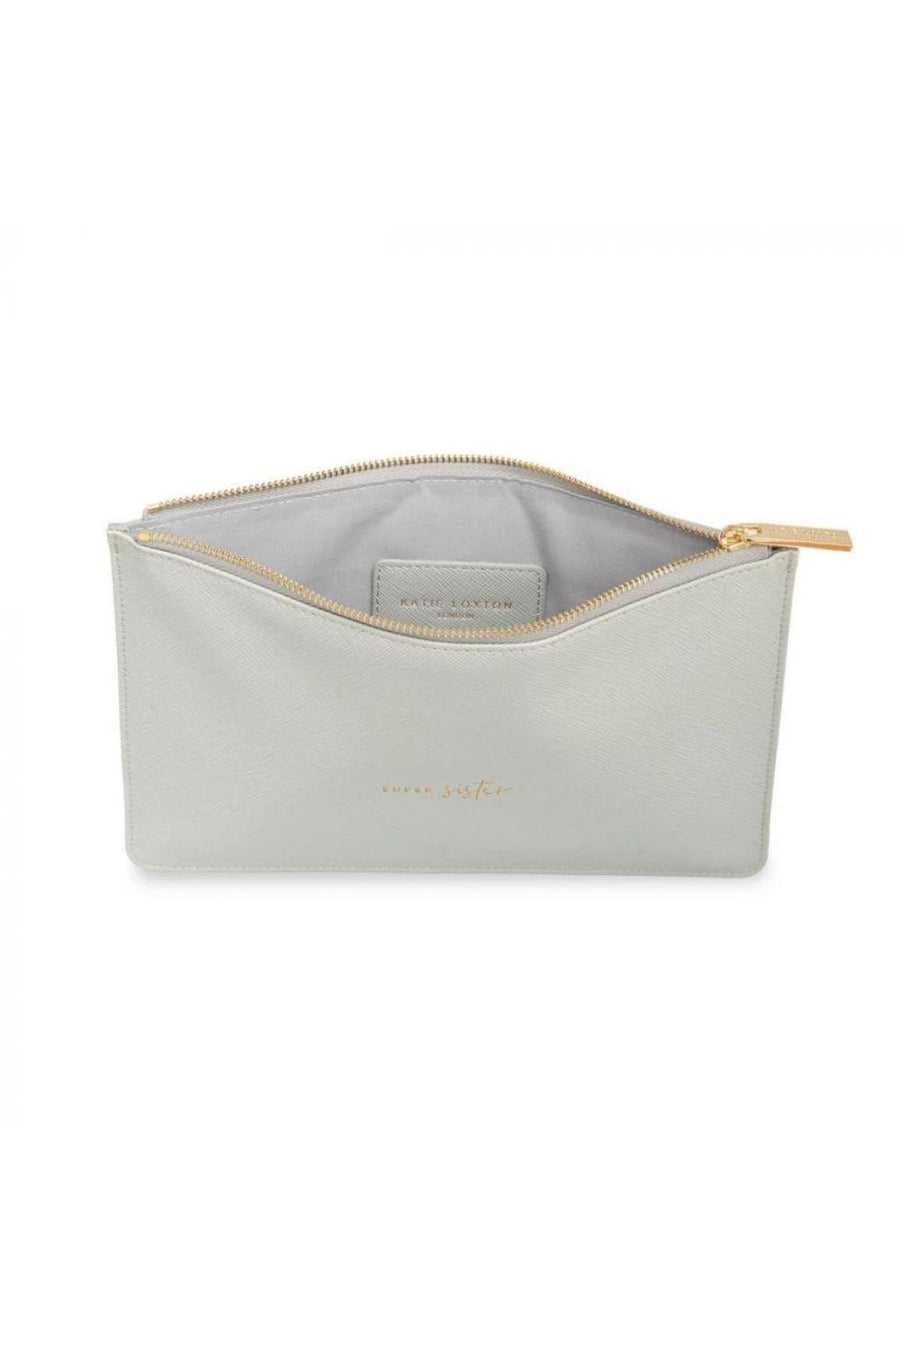 Katie Loxton 'Super Sister' Perfect Pouch